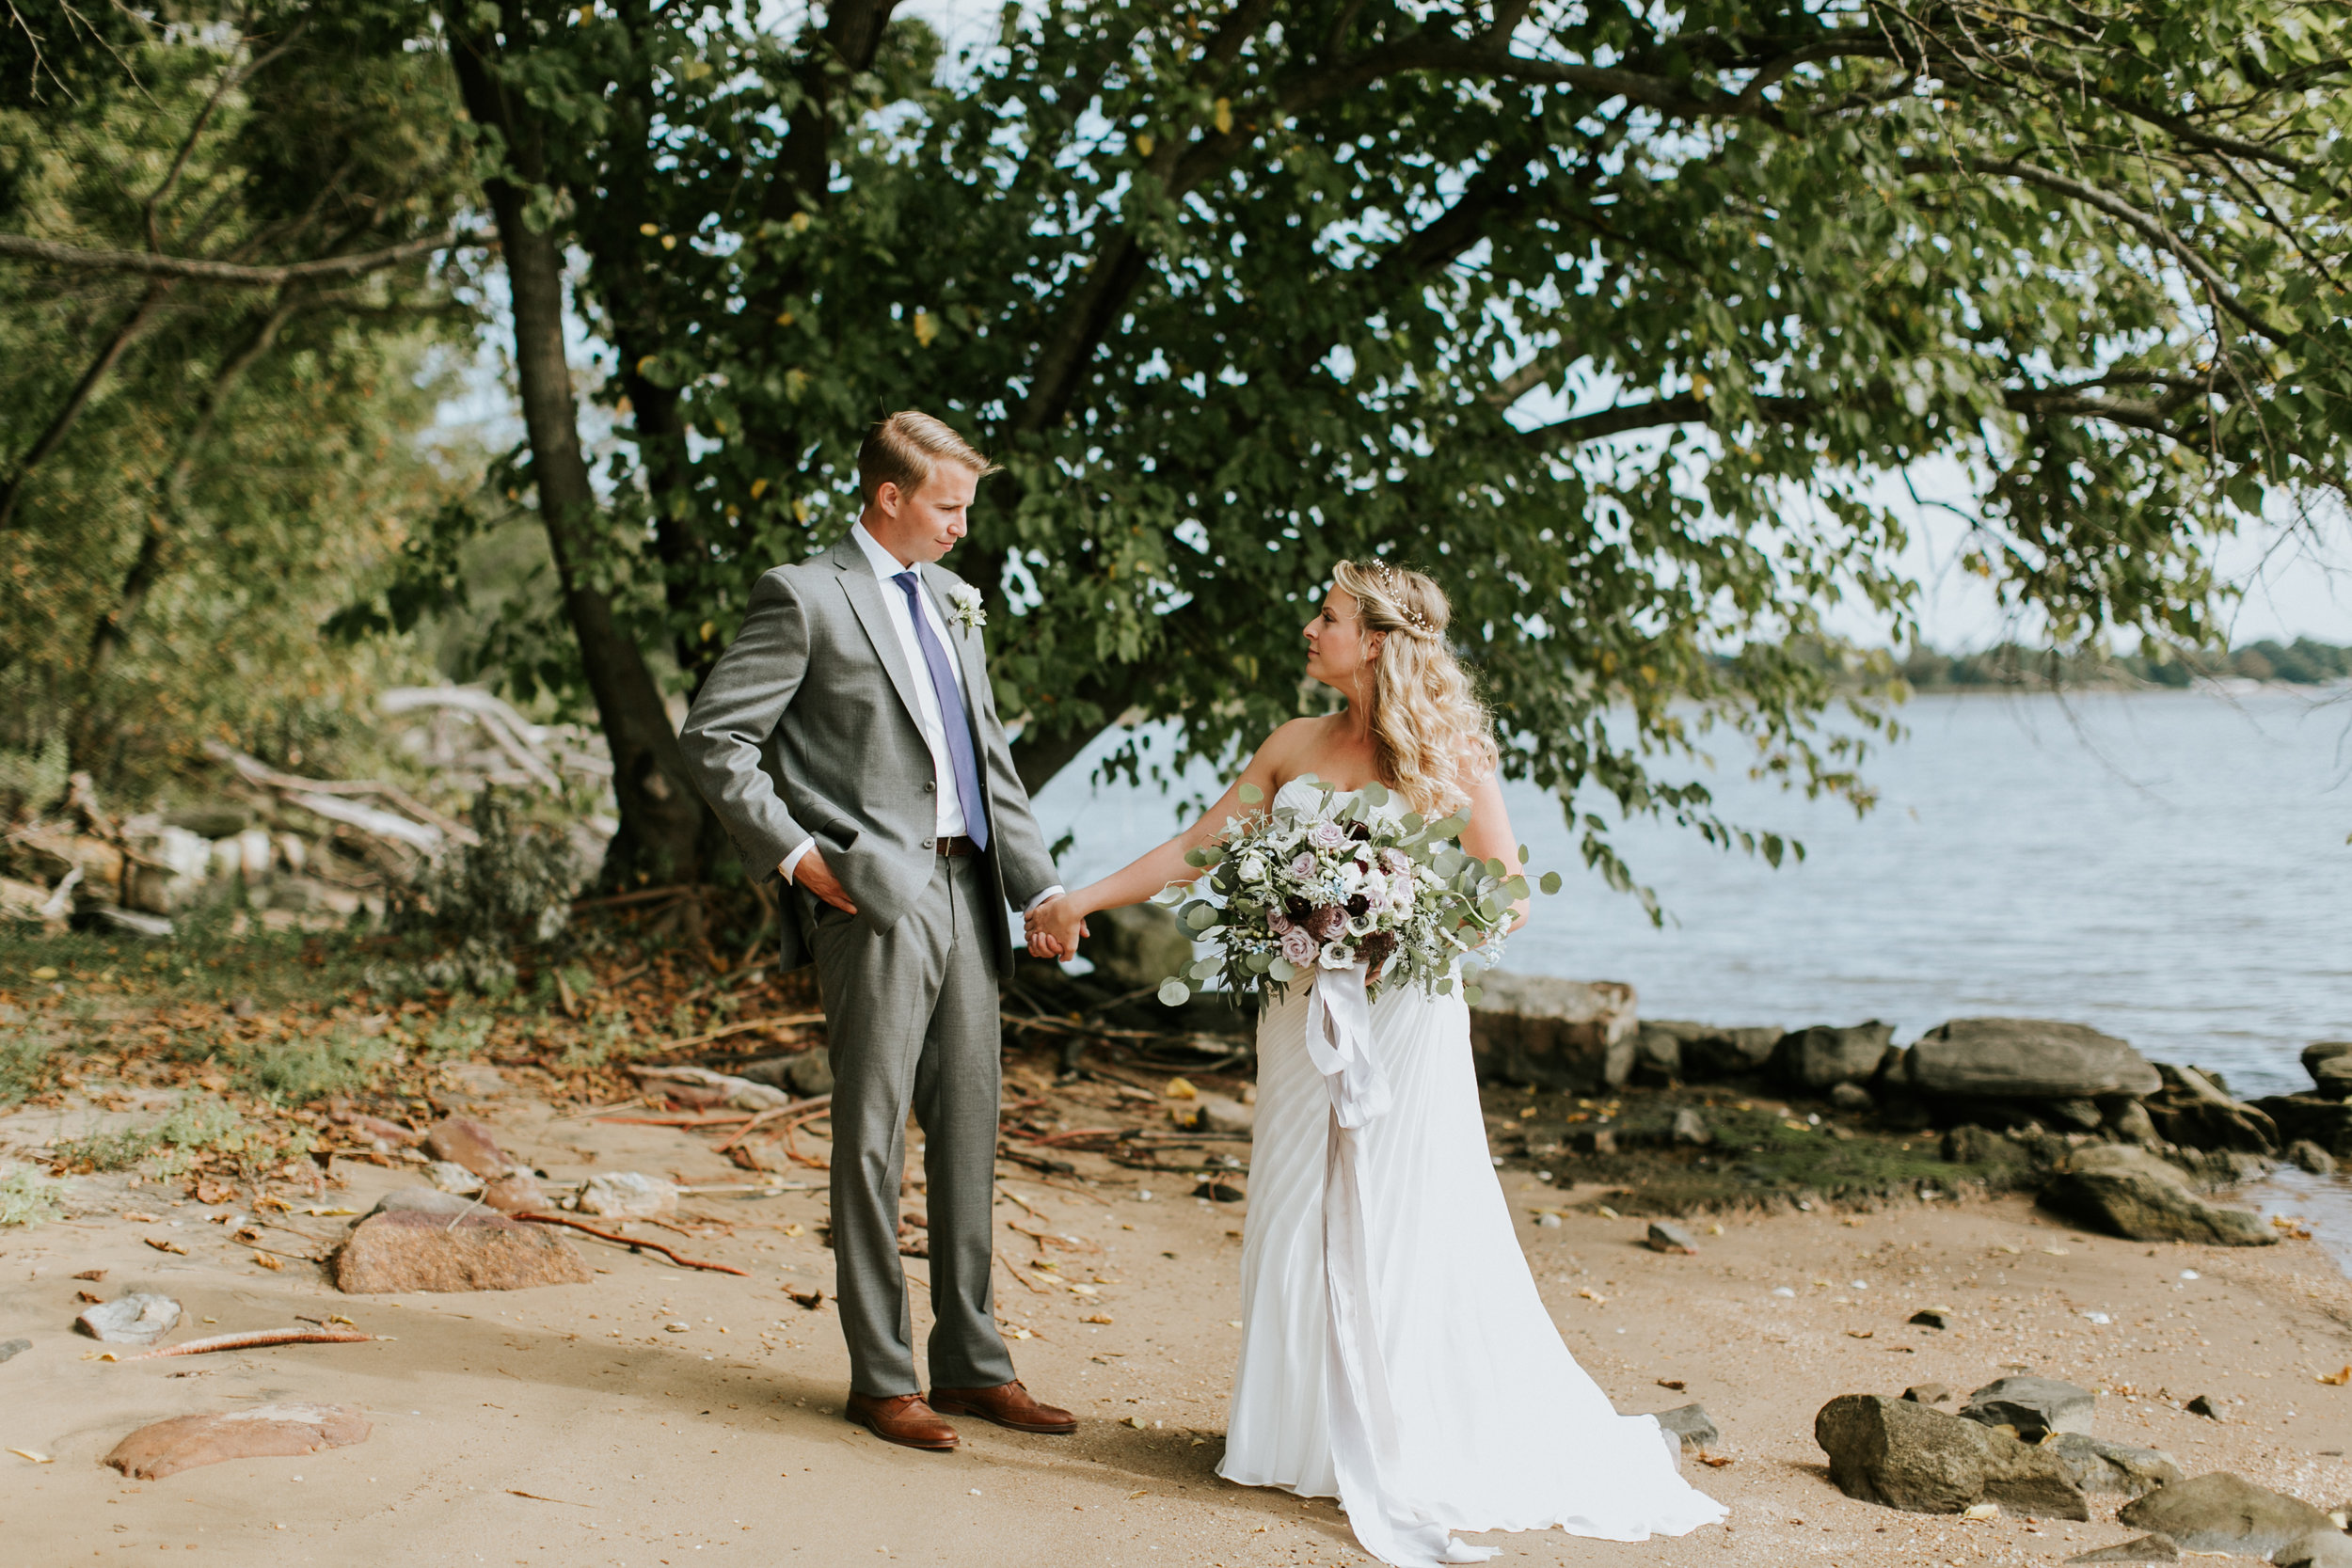 Rustic Oyster Themed Eastern Shore Maryland Outdoor Wedding by East Made Event Company Wedding Planner and Bekah Kay Creative258.jpg